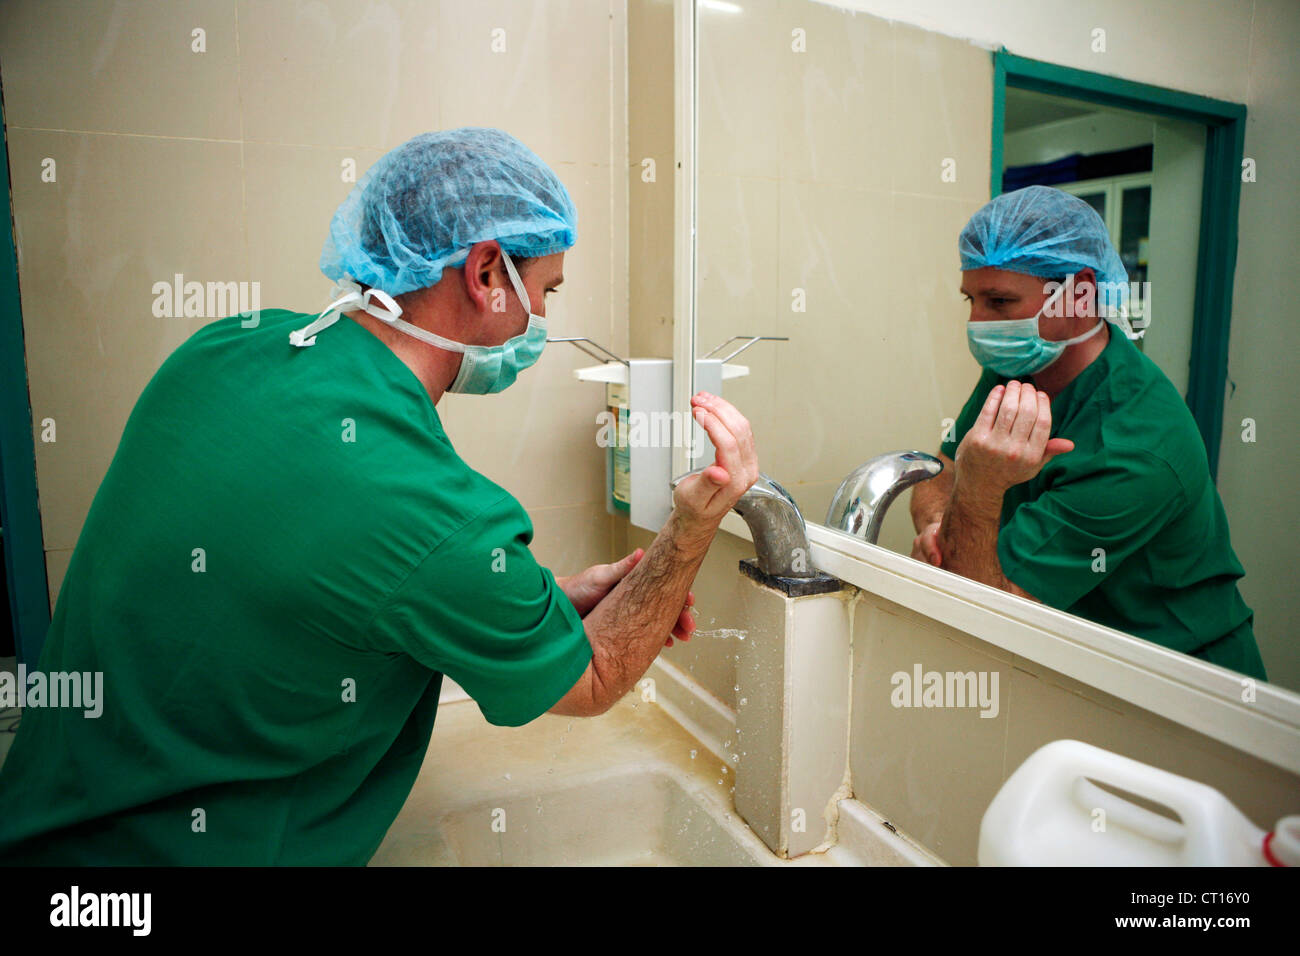 A Surgeon washes his hands and arms prior to surgery. - Stock Image